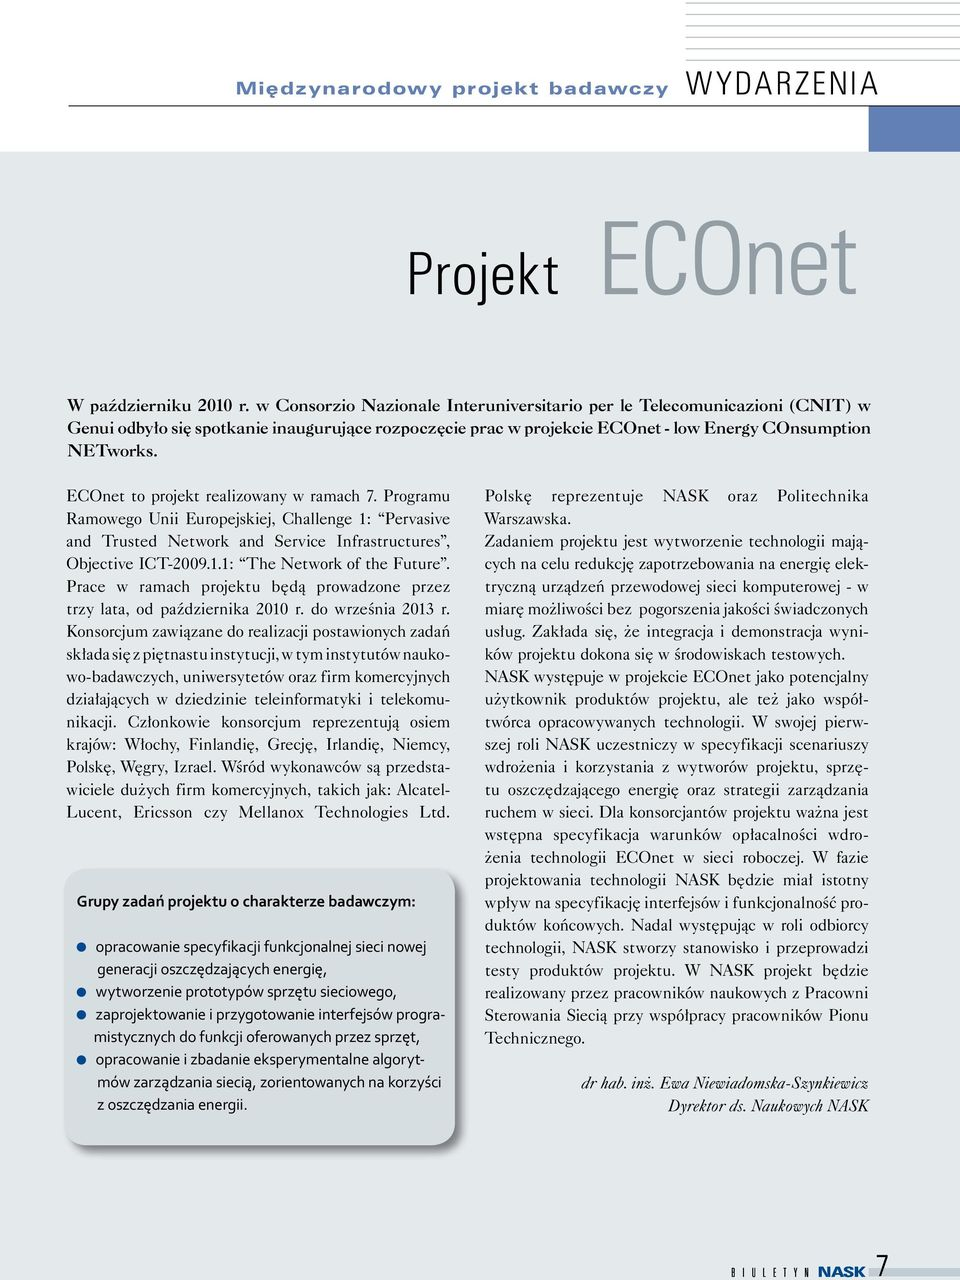 ECOnet to projekt realizowany w ramach 7. Programu Ramowego Unii Europejskiej, Challenge 1: Pervasive and Trusted Network and Service Infrastructures, Objective ICT-2009.1.1: The Network of the Future.